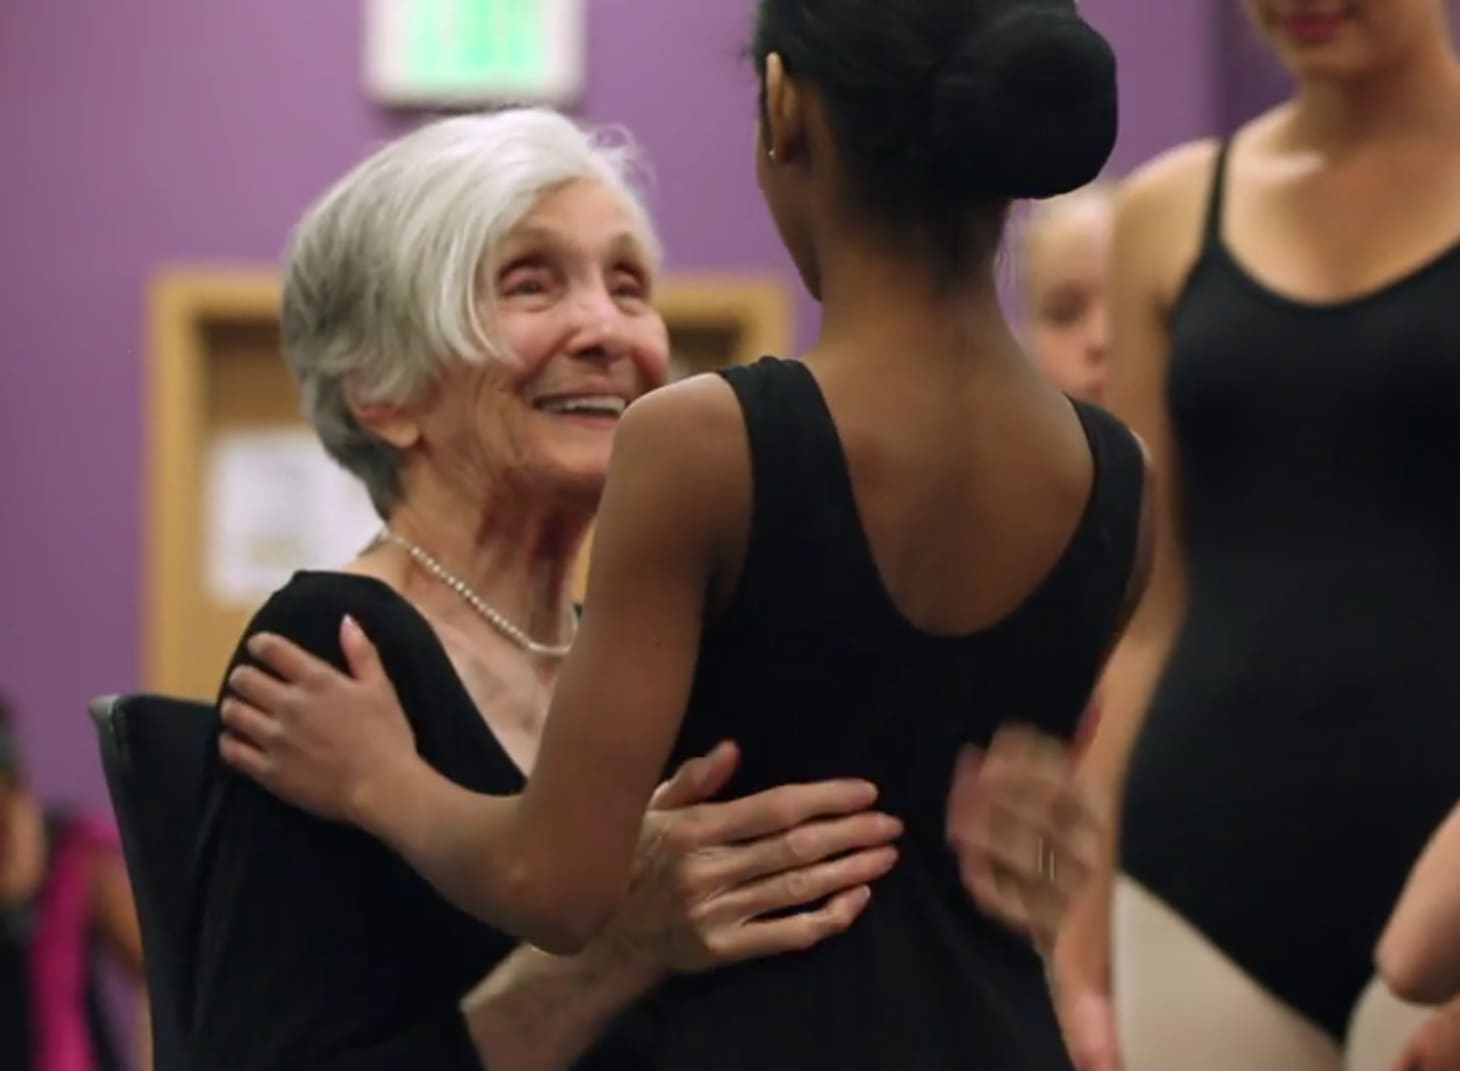 The Art of Living: Life Lessons from an 88-Year-Old Ballet